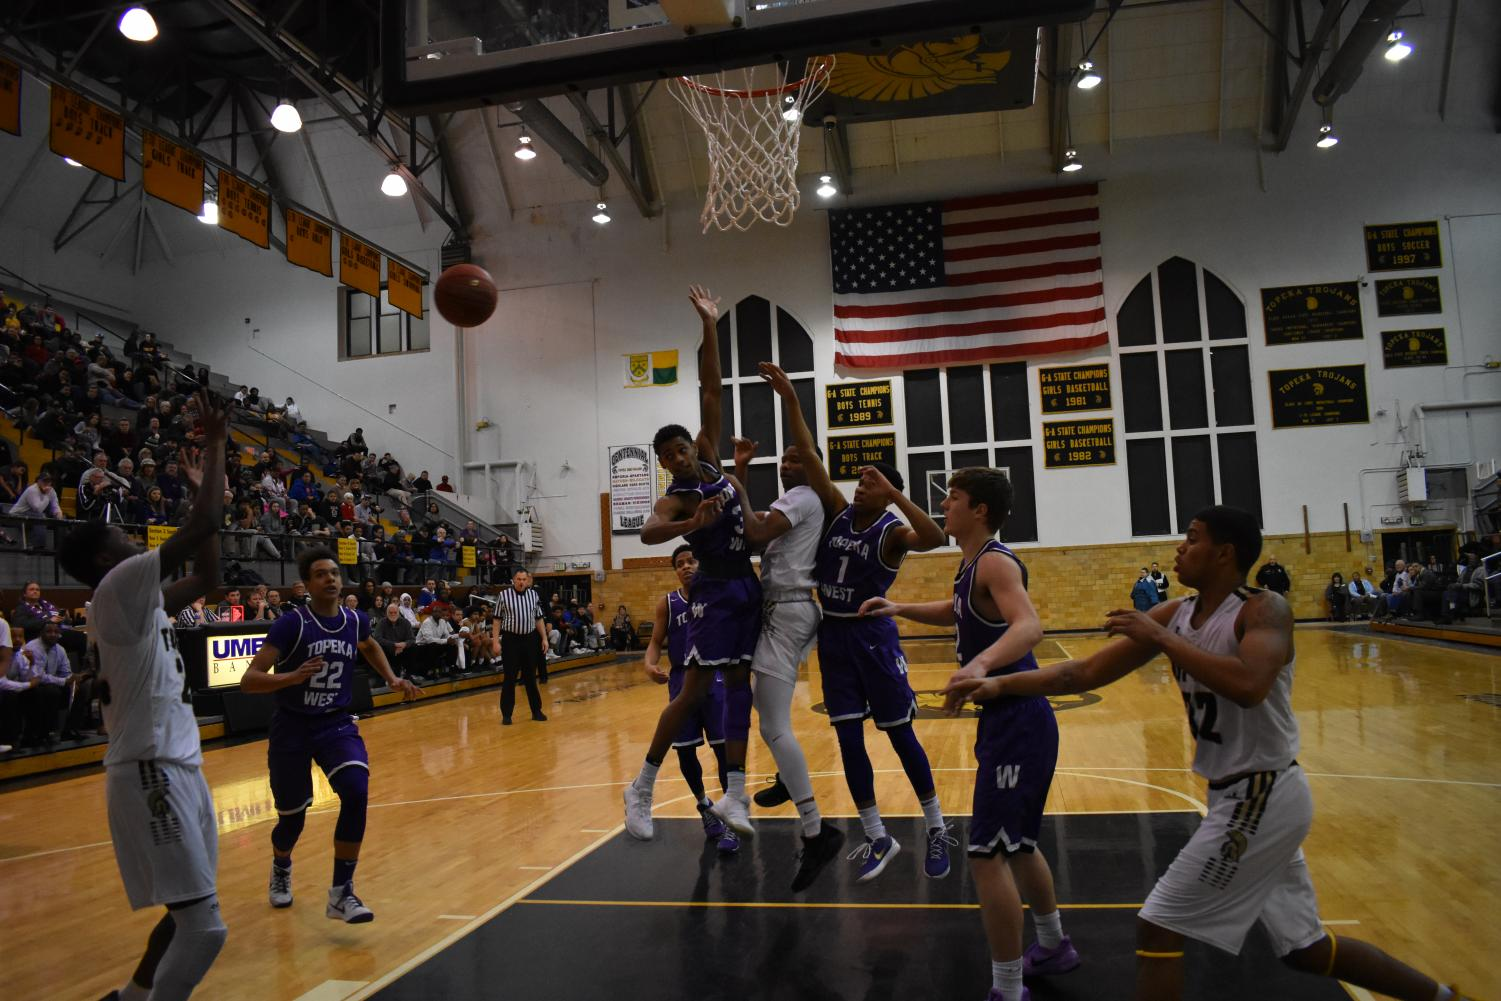 Topeka High and rival team Topeka West faced off on February 6. Topeka High lost by 12 points.